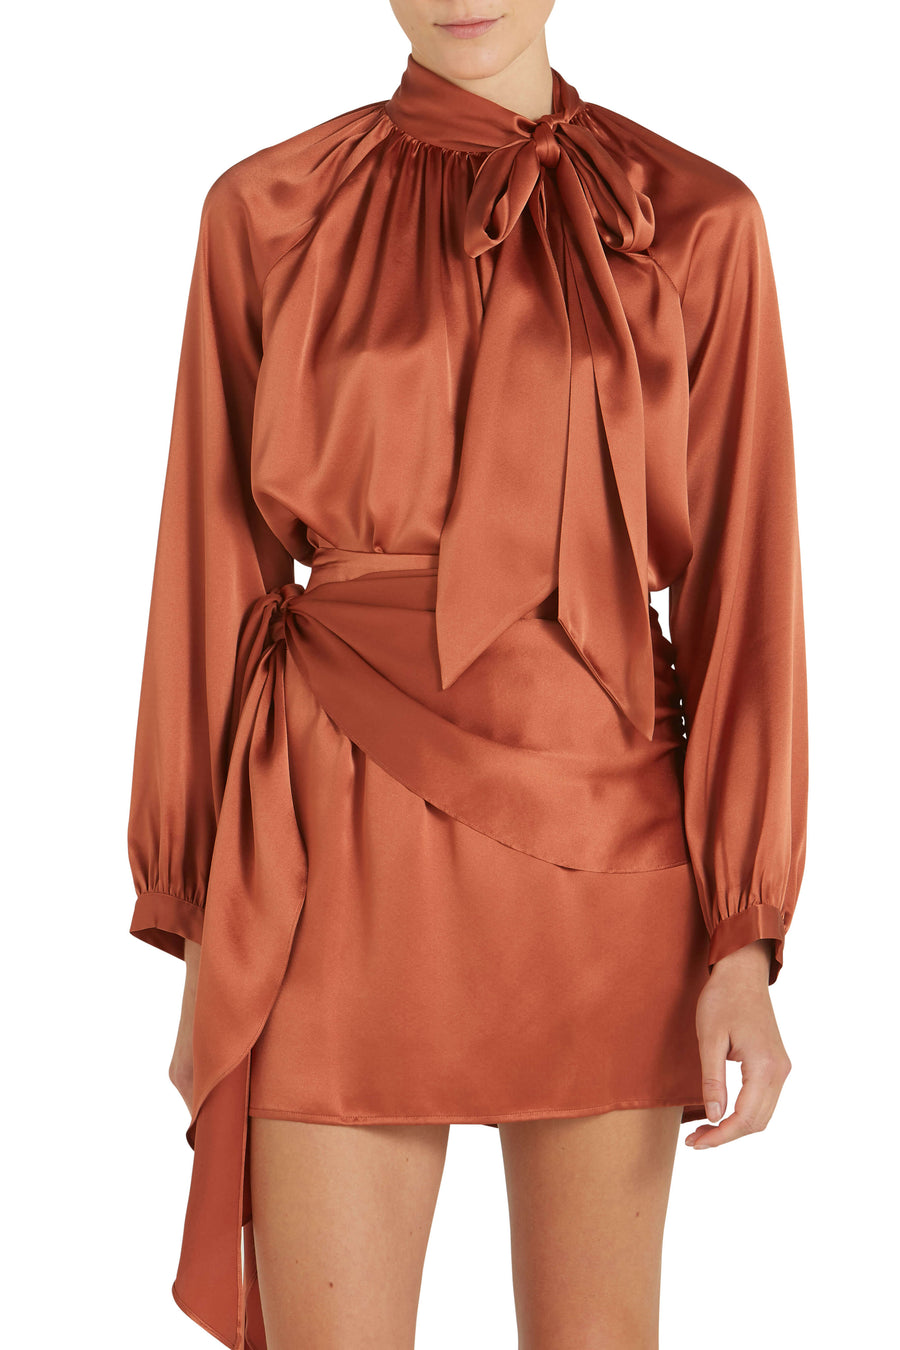 Michelle Mason Tie Neck Blouse in Dune from The New Trend